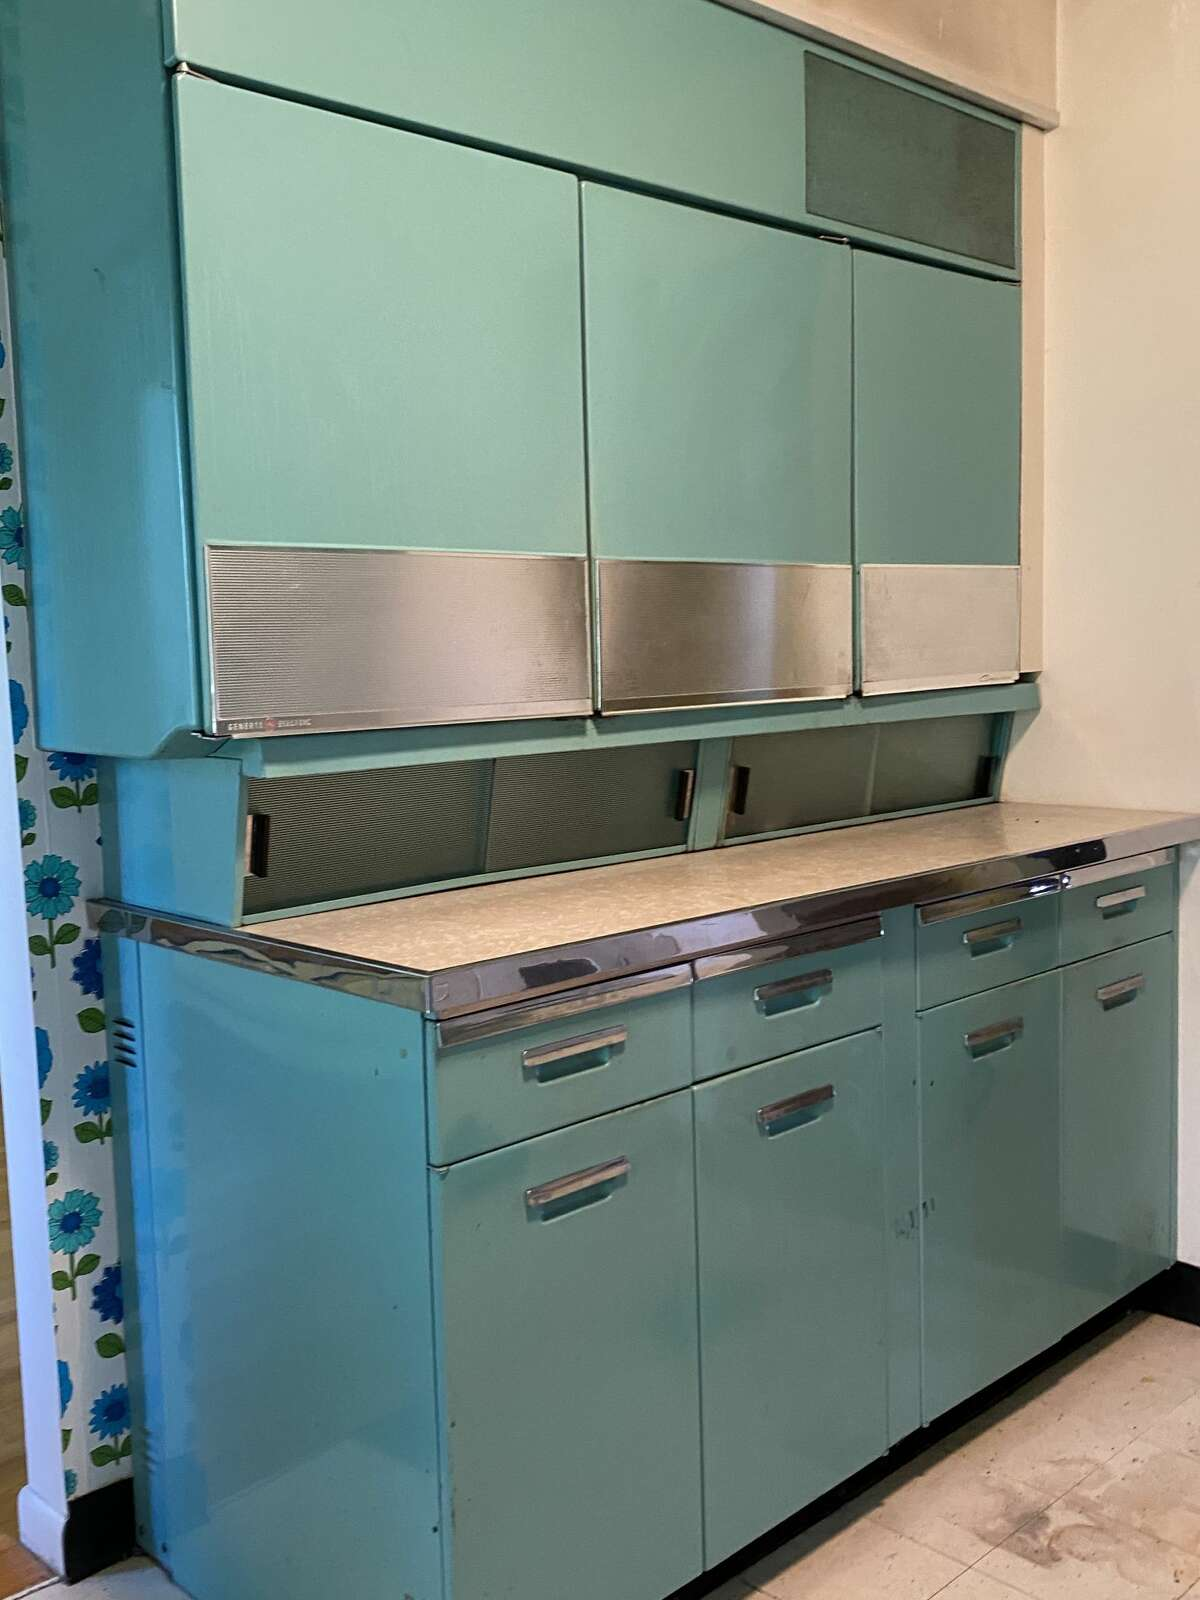 When 1 Gingerbread Lane, Albany, was built in 1955, the turquoise kitchen appliances were state-of-the art. When the homeowners put the house on the market this summer, the kitchen was untouched.